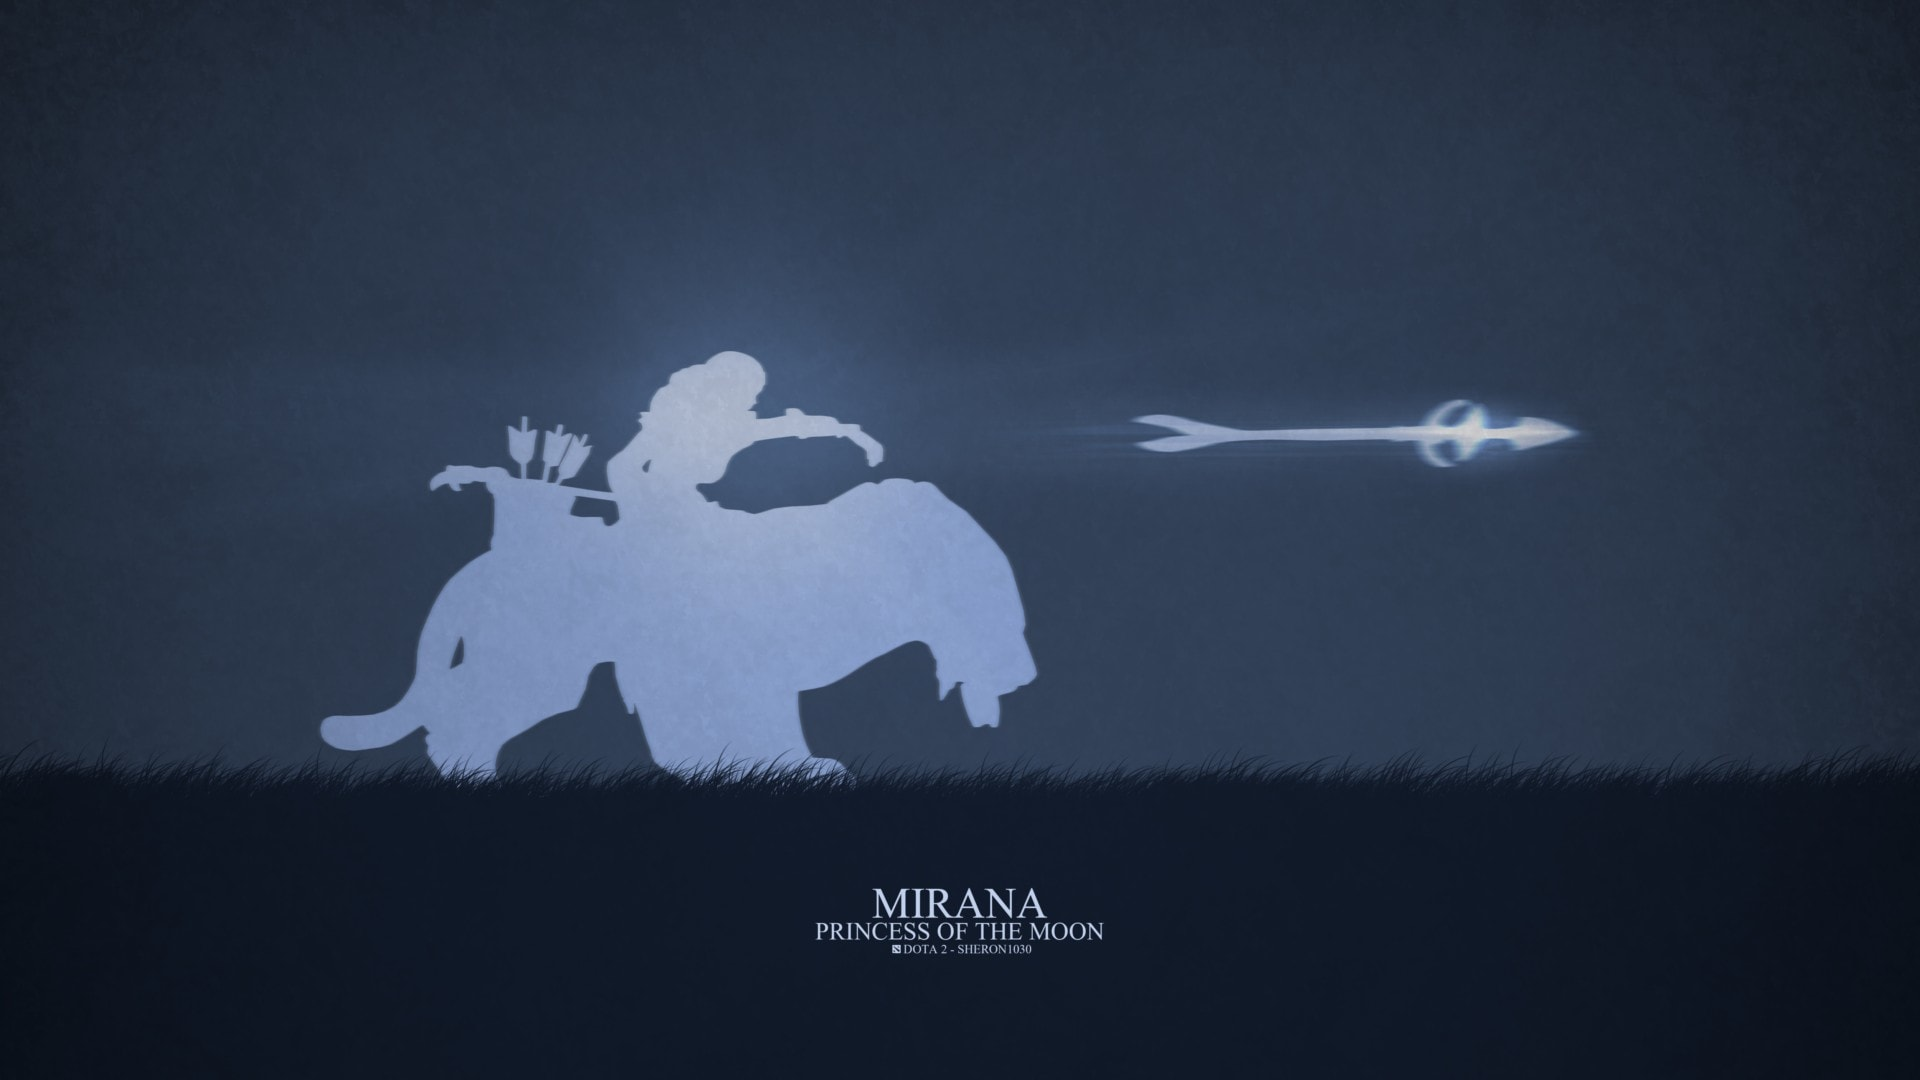 Dota2 : Mirana desktop wallpaper